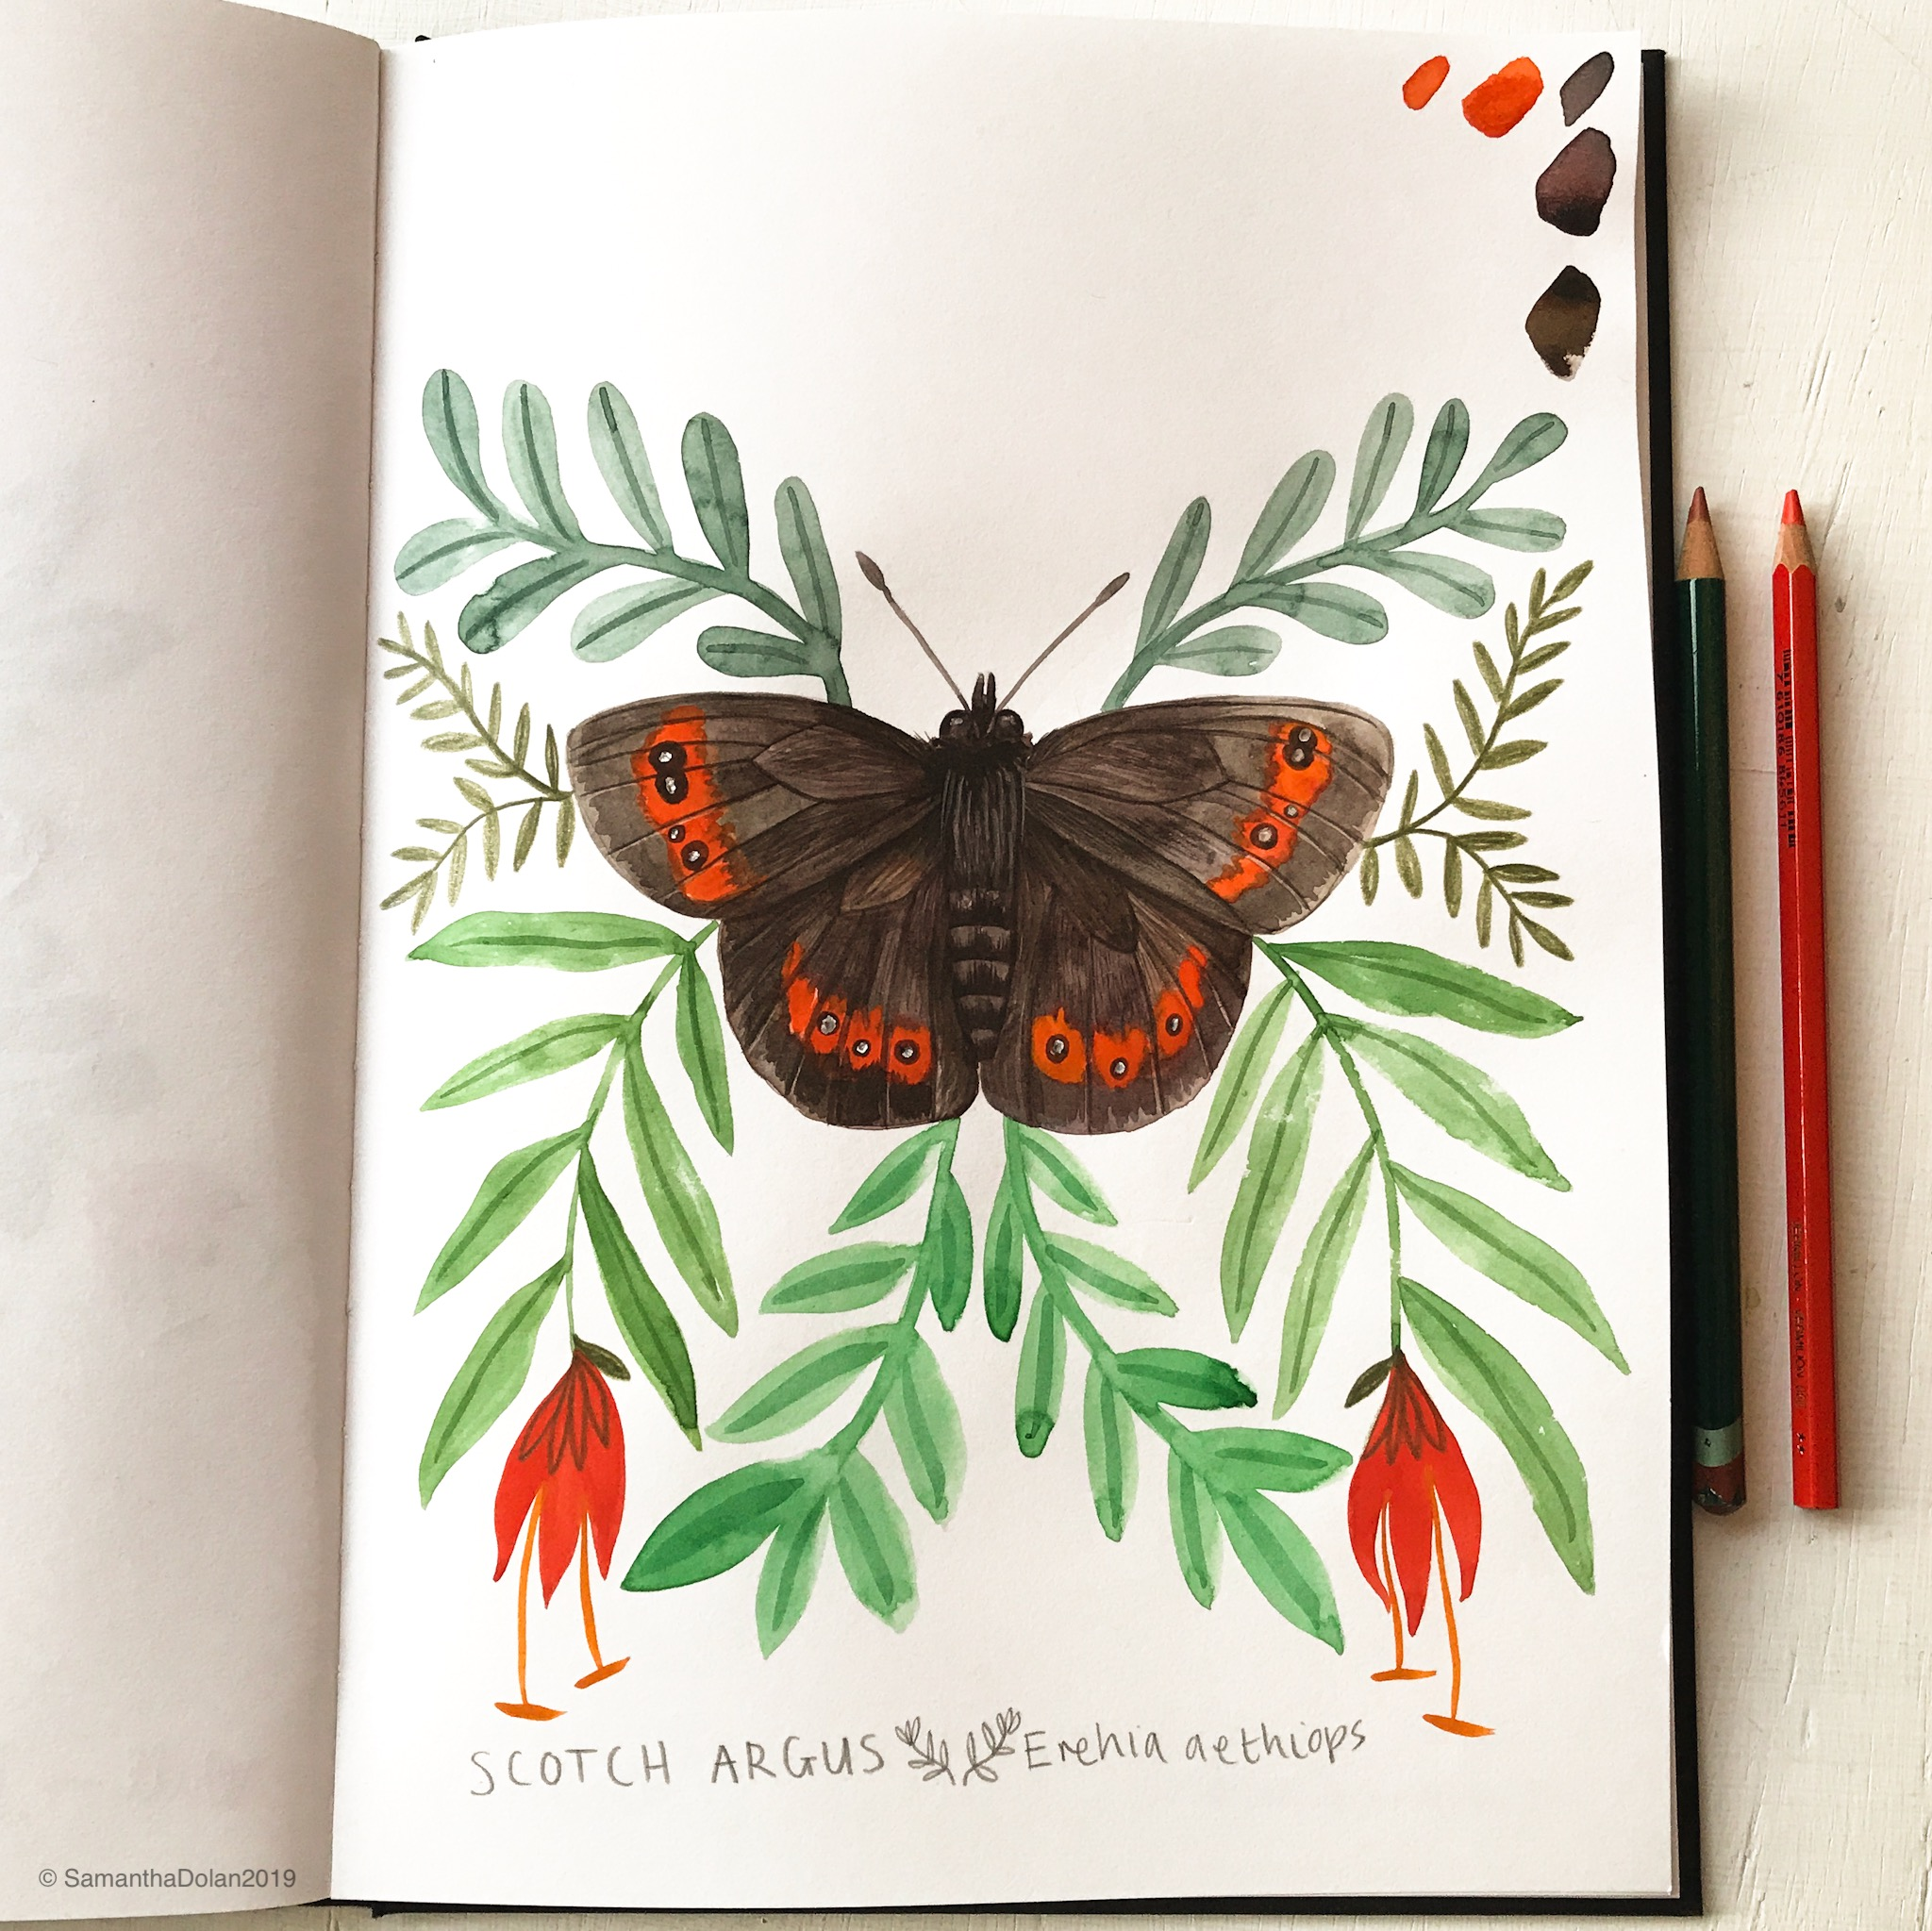 scotch argus butterfly by samantha dolan.jpg